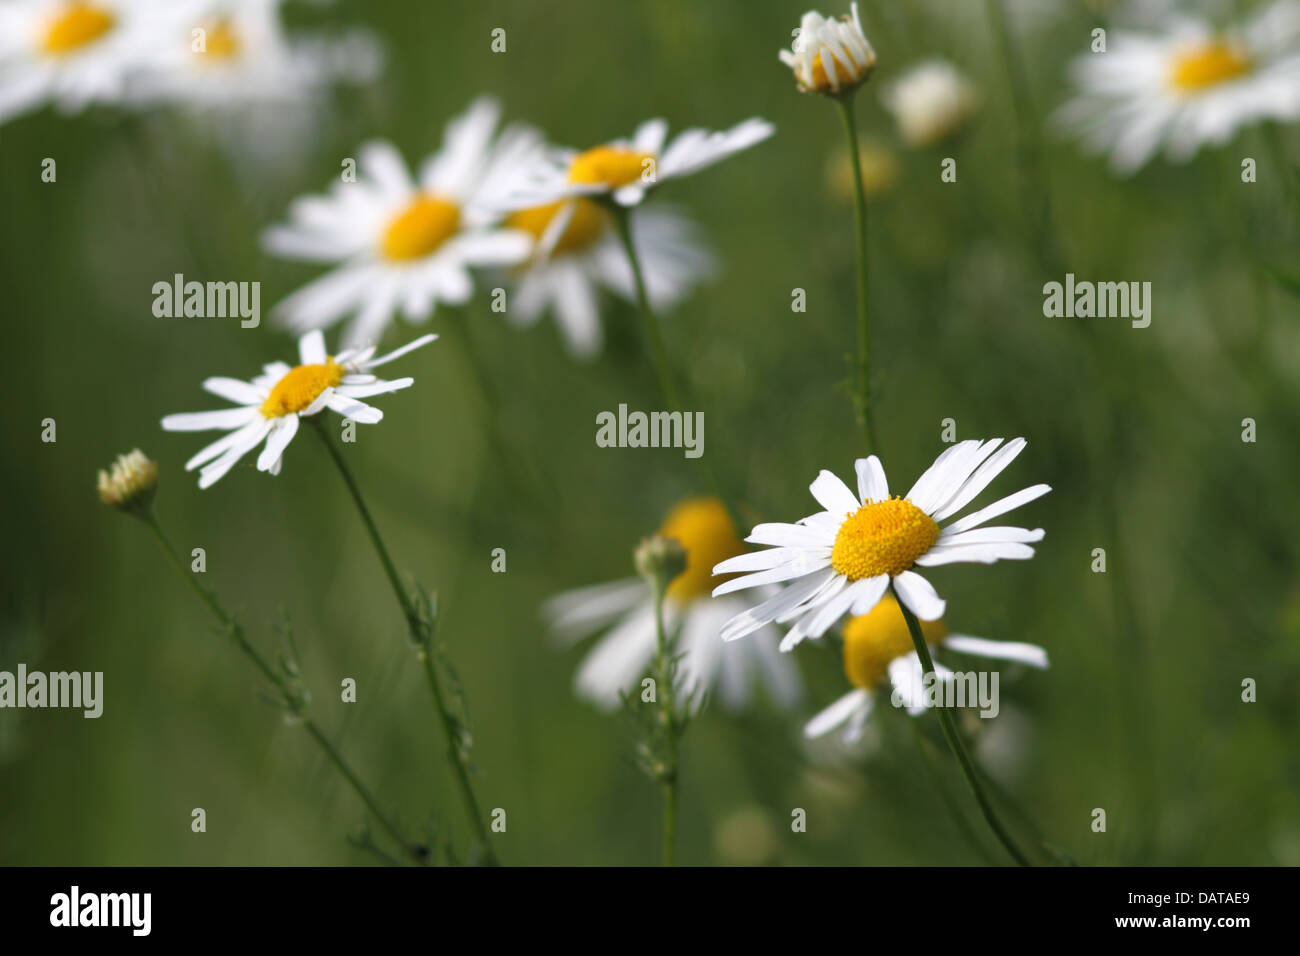 Wild summer flowers daisies growing in the green field stock wild summer flowers daisies growing in the green field izmirmasajfo